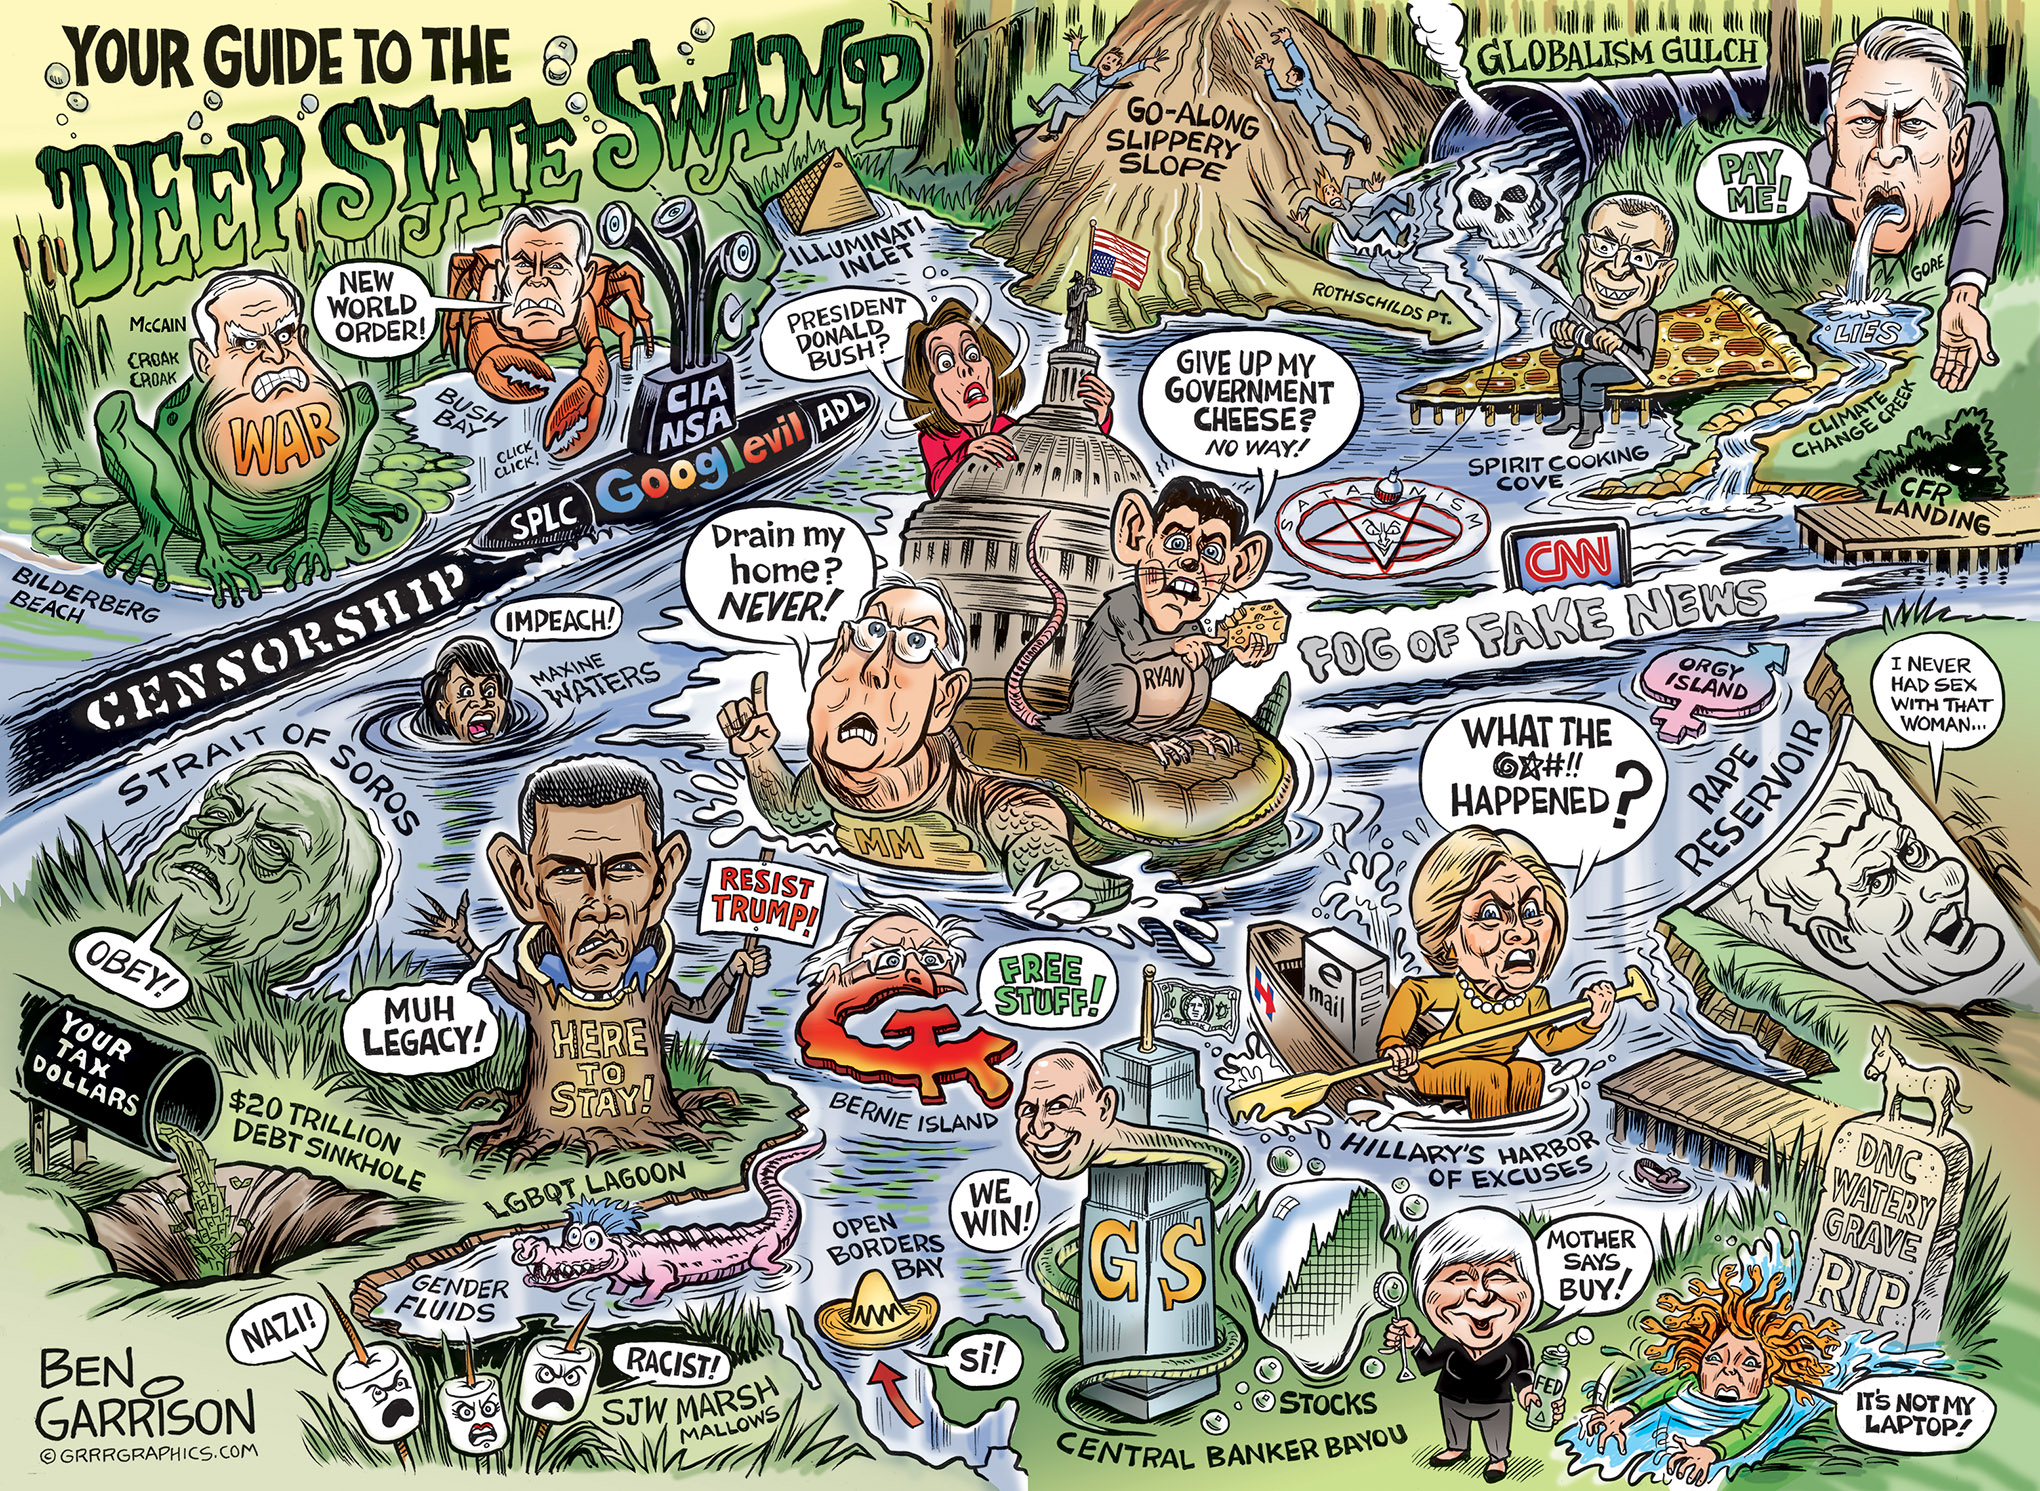 guide-to-deep-state-swamp-ben-garrison.j